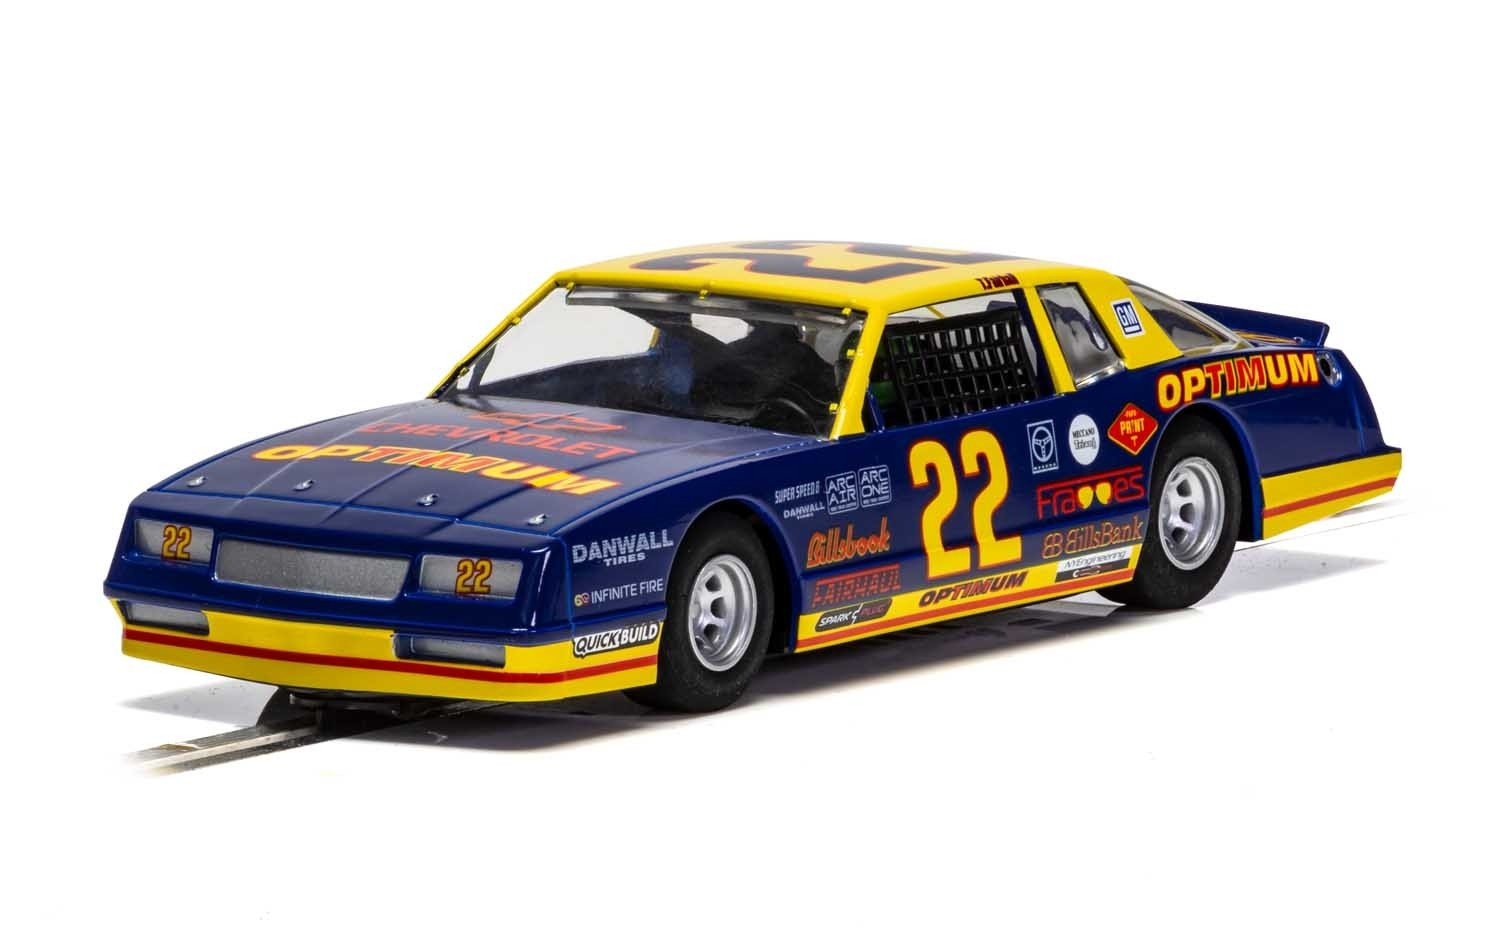 CHEVROLET MONTE CARLO 1986 - 'OPTIMUM' NO22